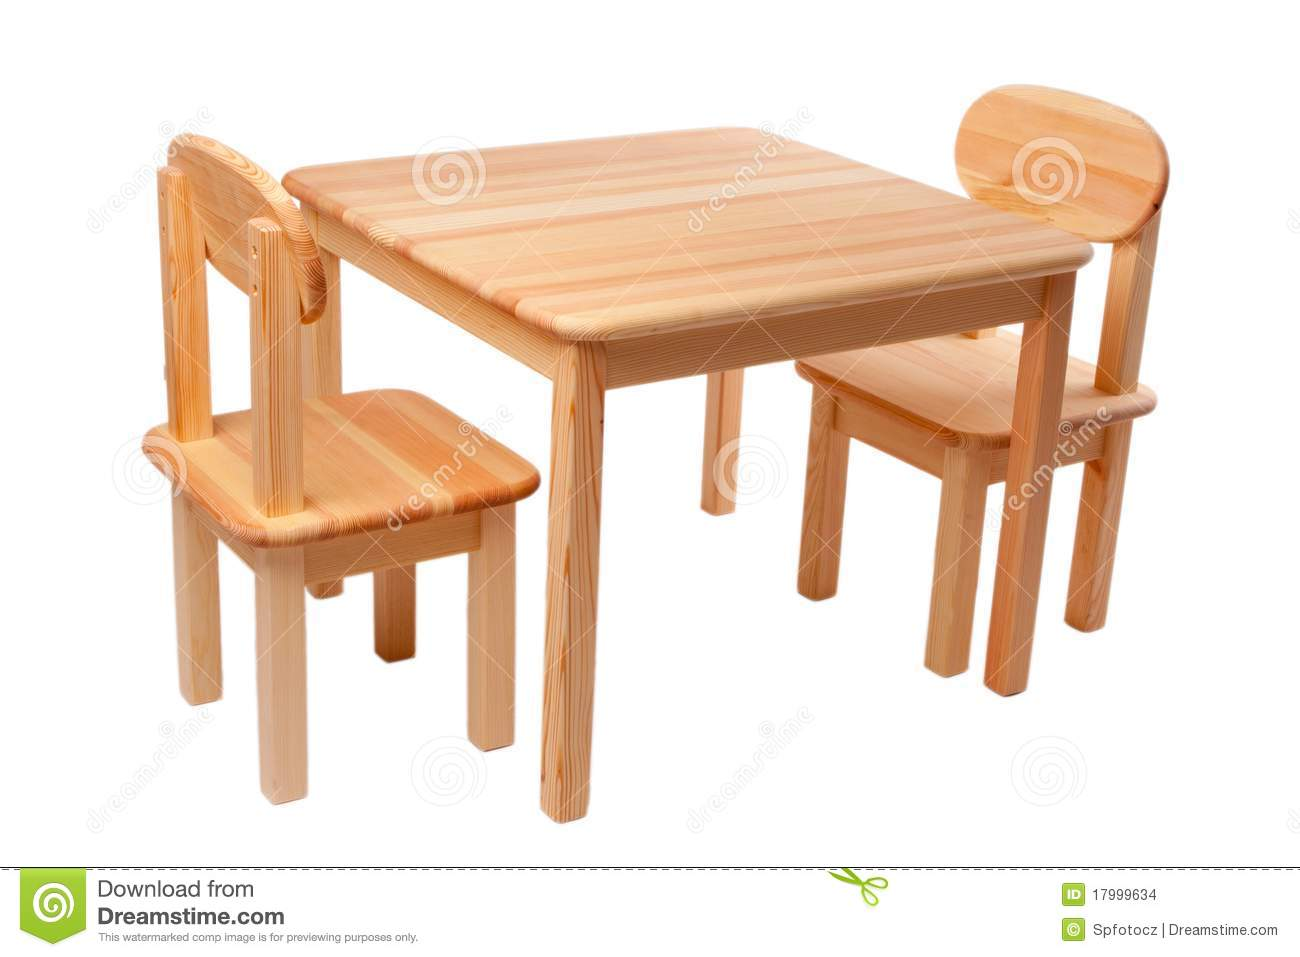 Table With Two Chairs Wooden Table With Two Chairs Stock Photo Image Of Pine Decor